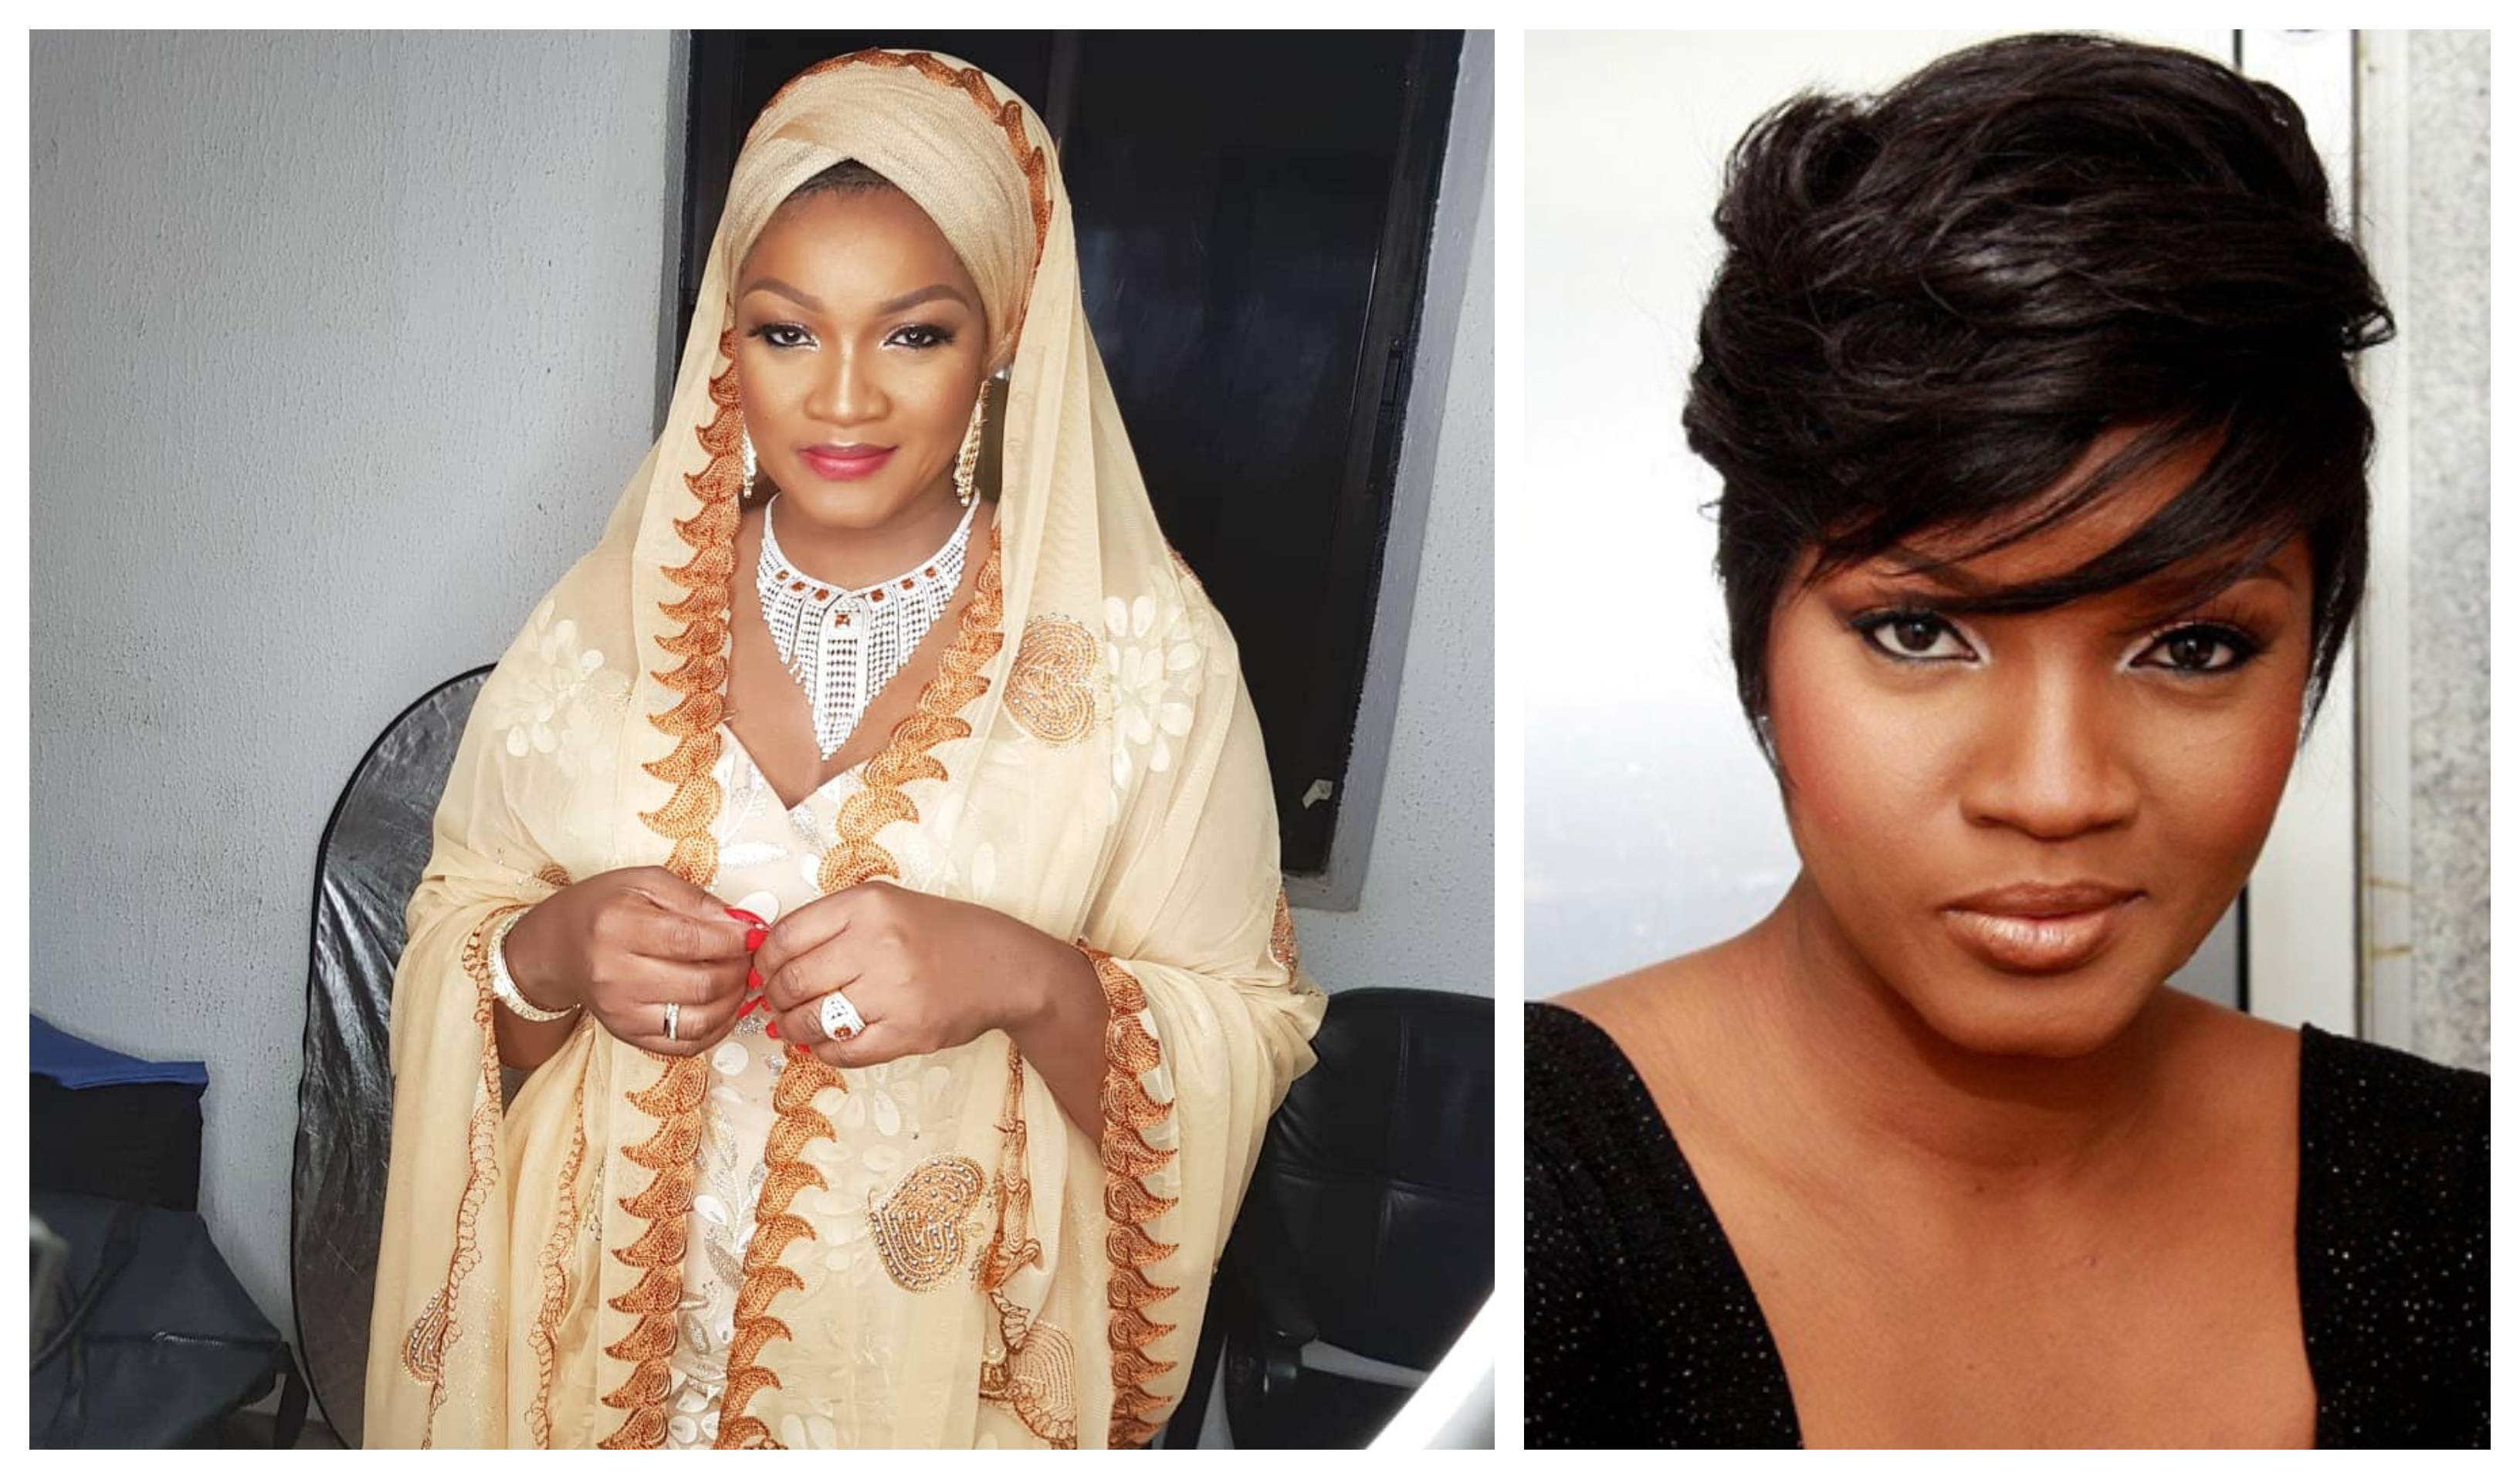 Photo of Omotola Jalade-Ekeinde Reveals She Was Born A Muslim But Converted to Christianity